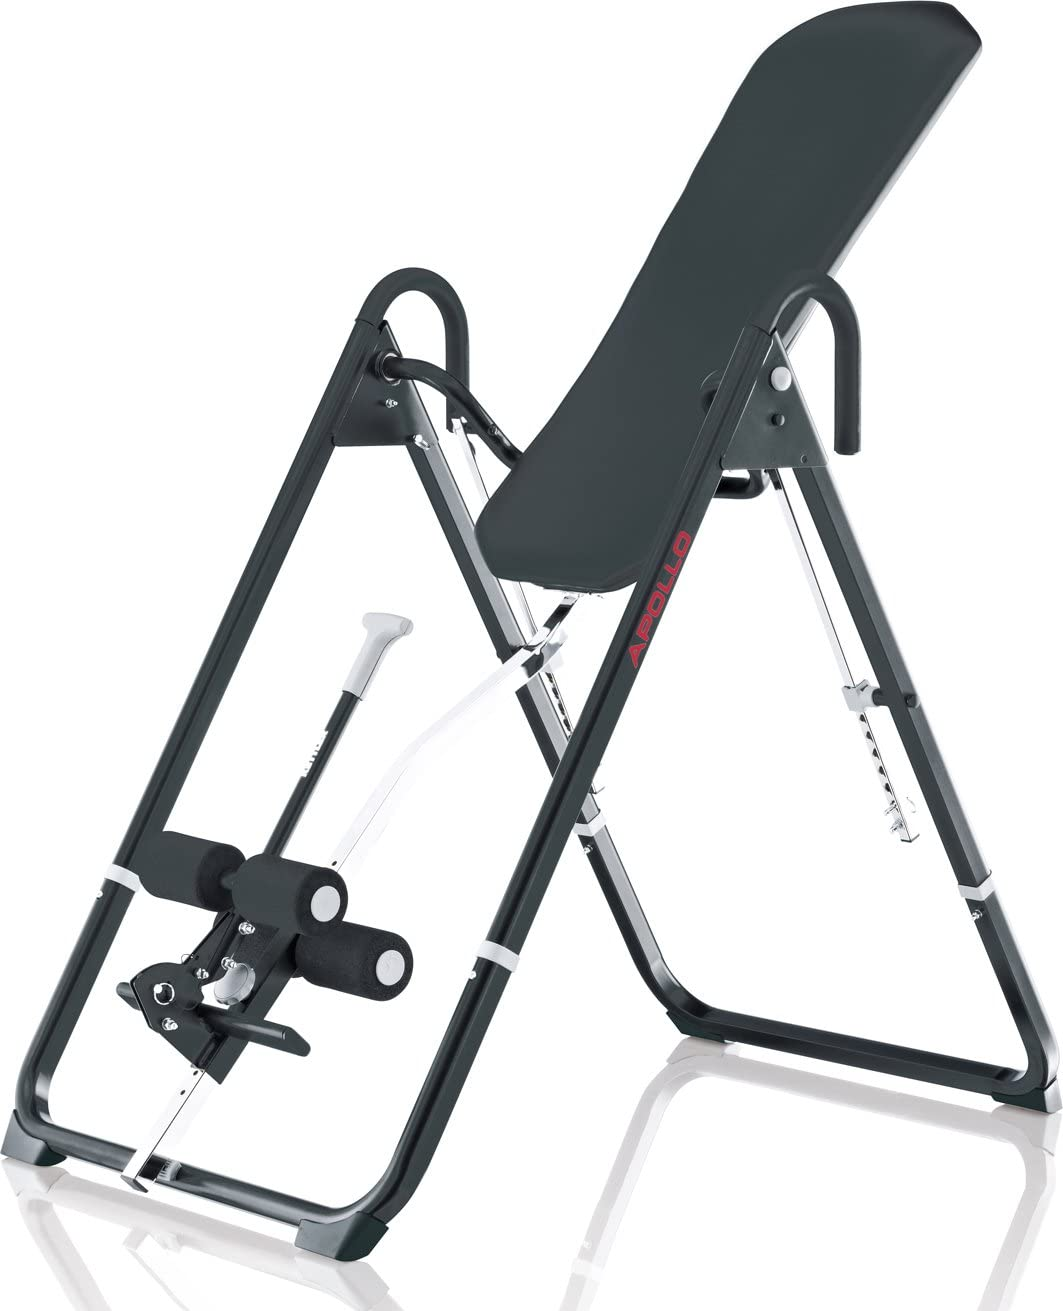 Kettler Home Exercise/Fitness Equipment: APOLLO Gravity Inversion Therapy Table : Inversion Equipment : Sports & Outdoors